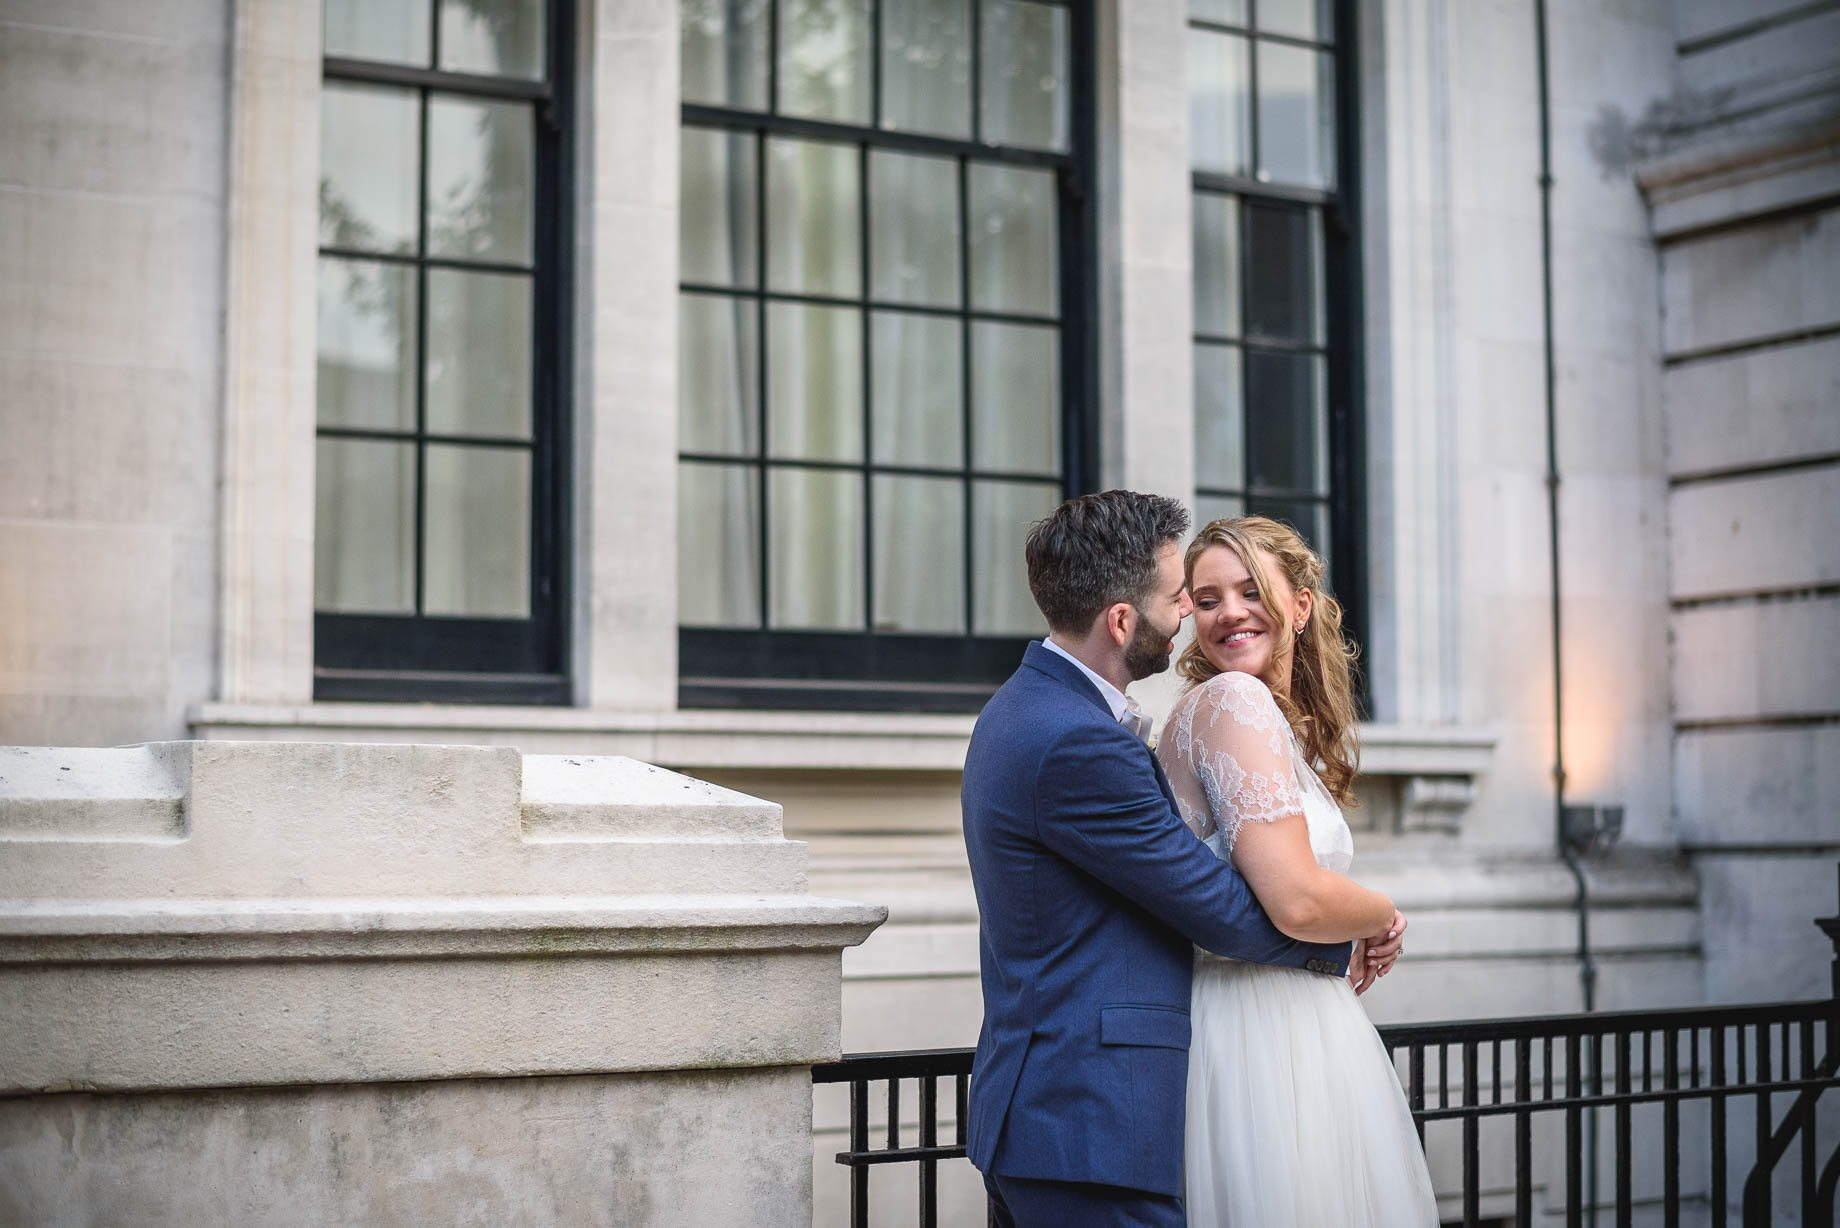 London Wedding Photography - Guy Collier Photography - LJ + Russell (129 of 155)